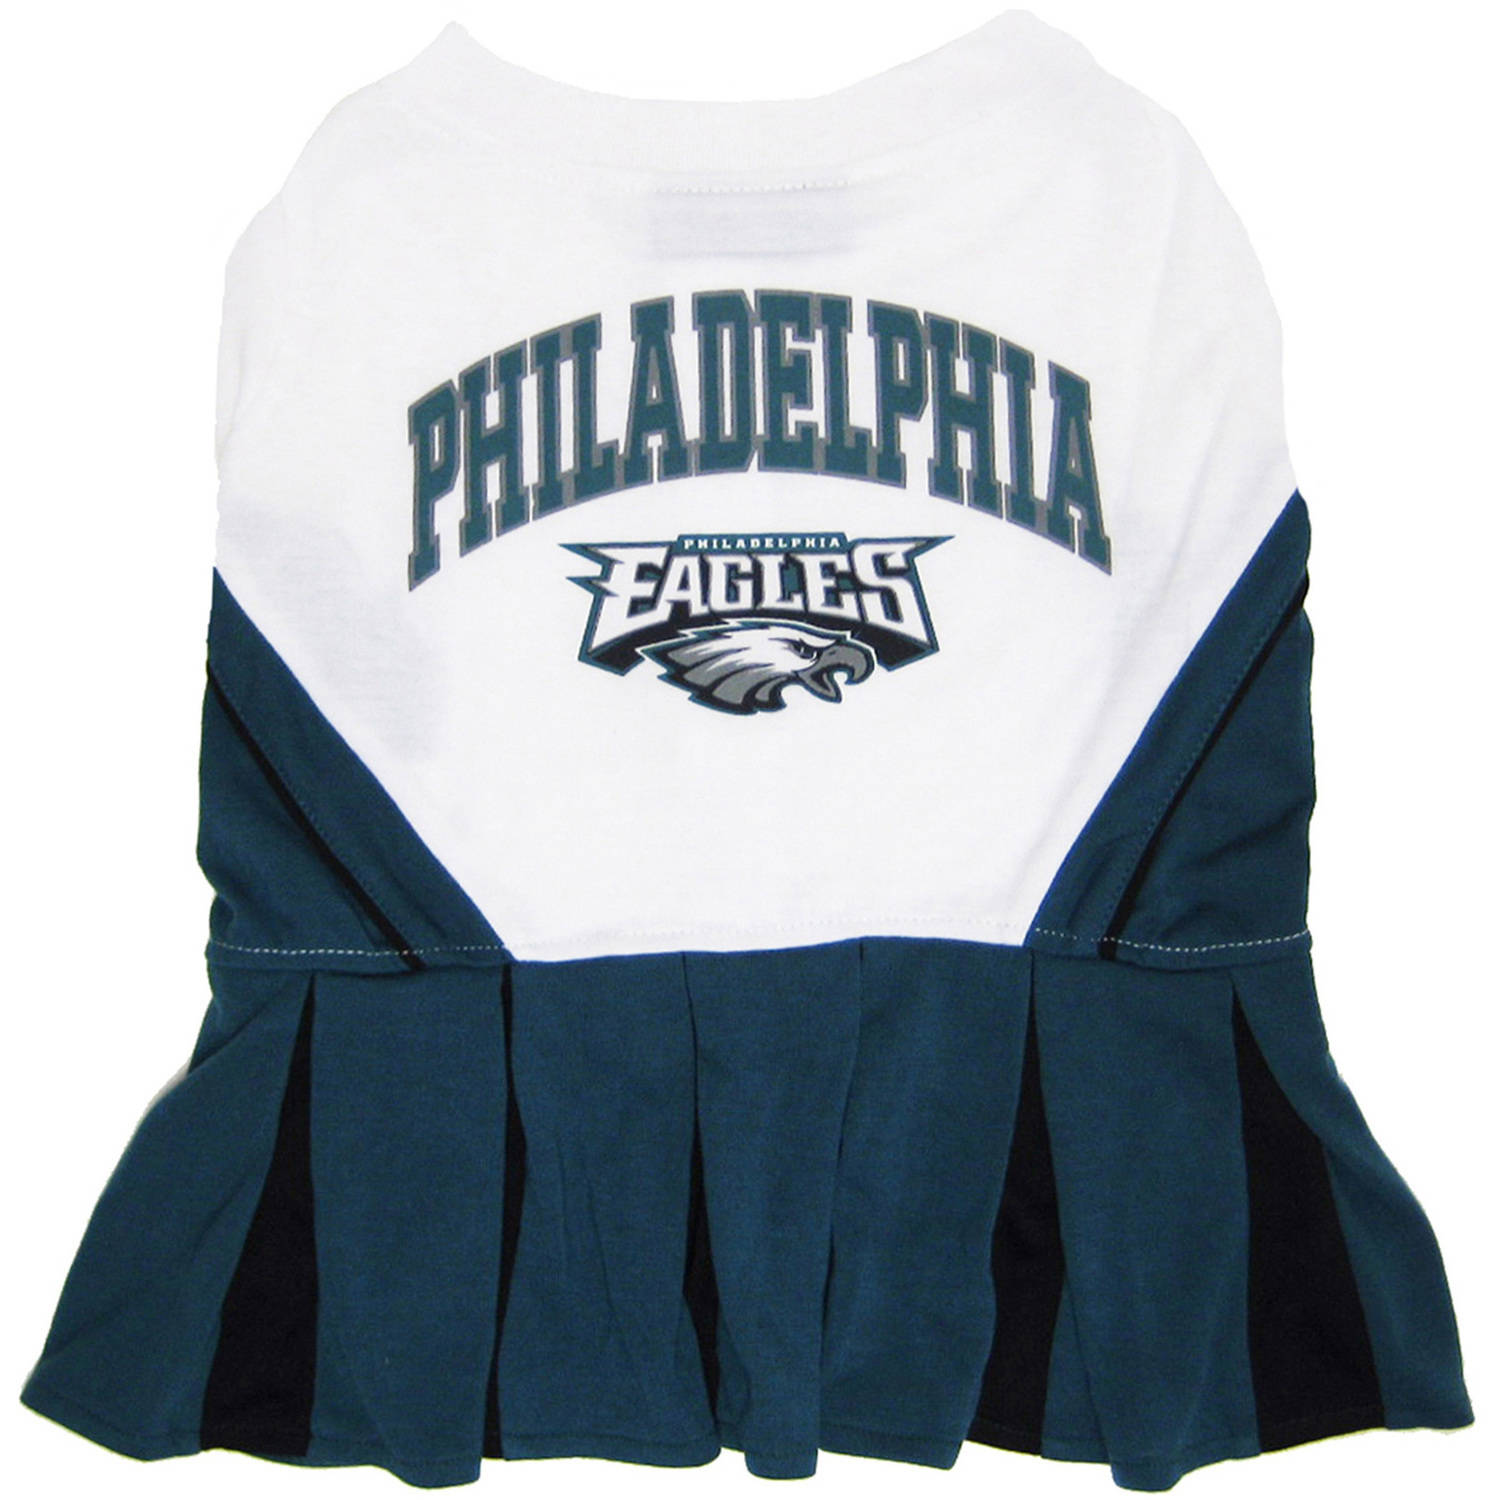 Pets First NFL Philadelphia Eagles Cheerleader, 3 Sizes Pet Dress Available. Licensed Dog Outfit